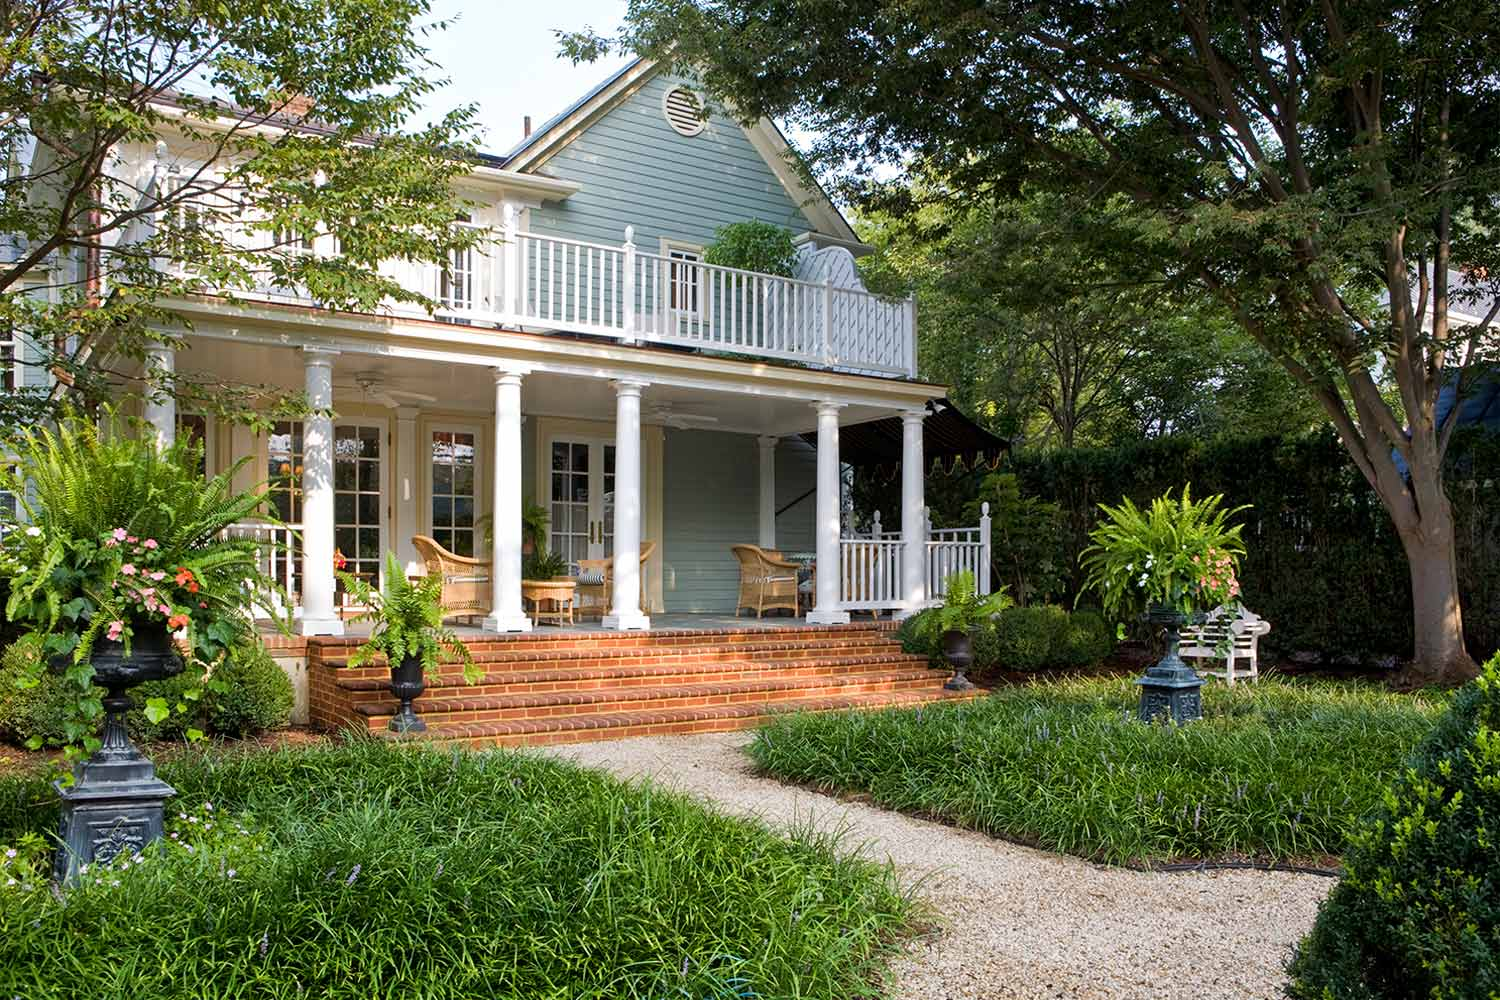 The back porch and garden of the Claiborne House.